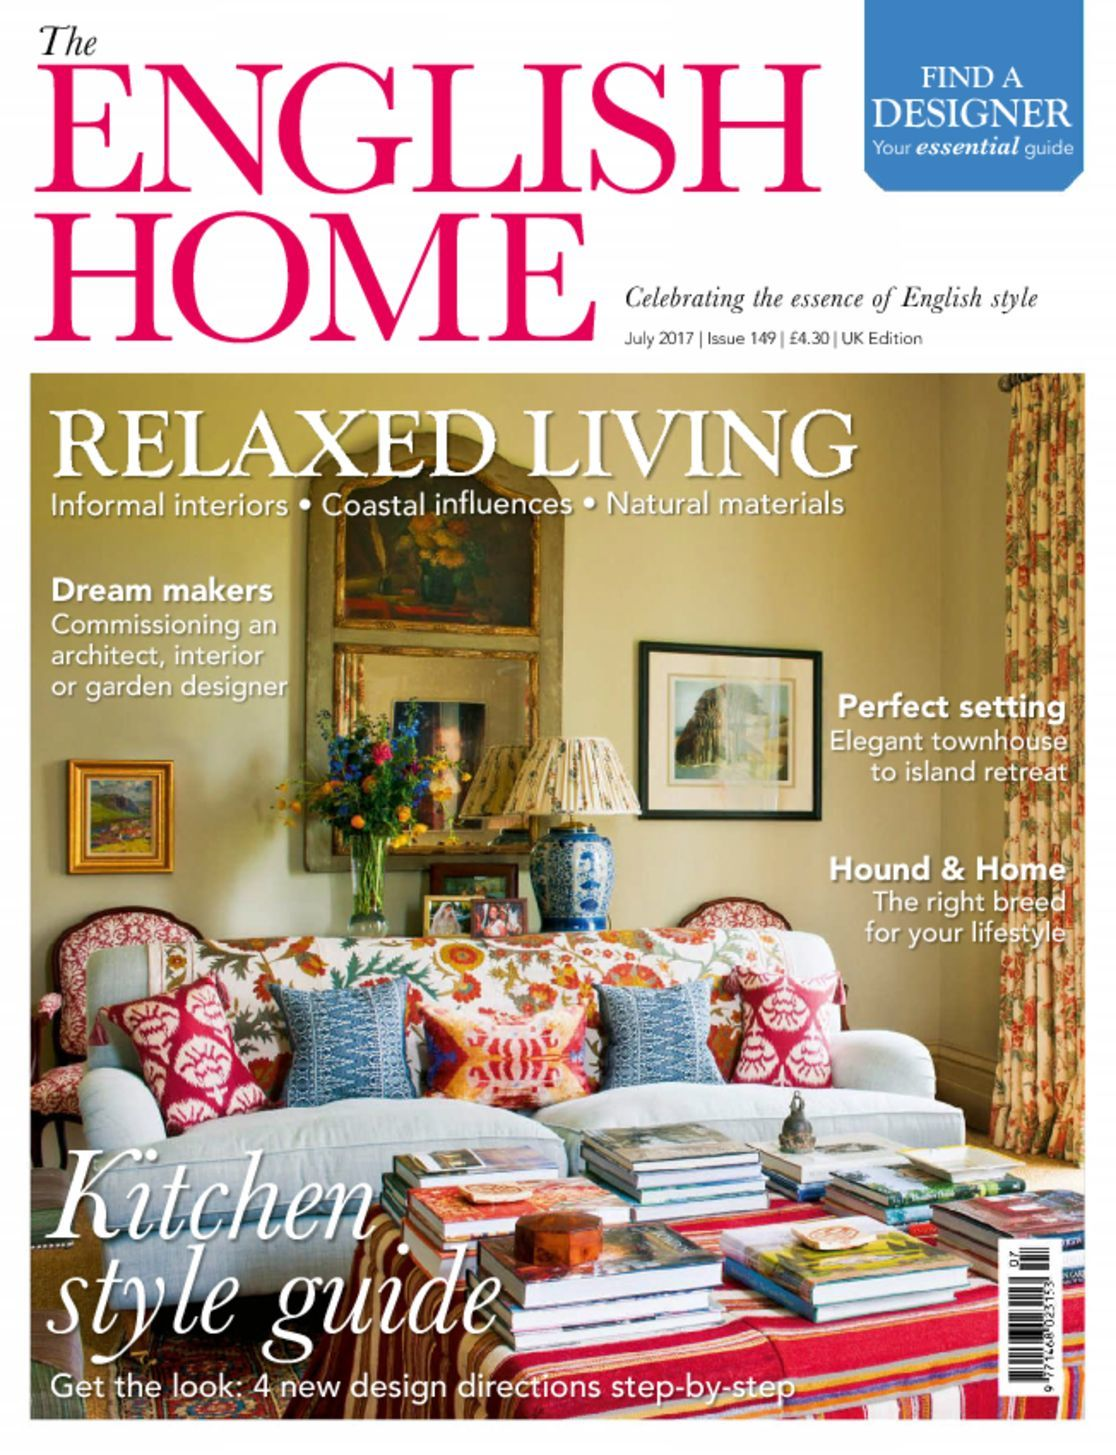 The English Home July 2017